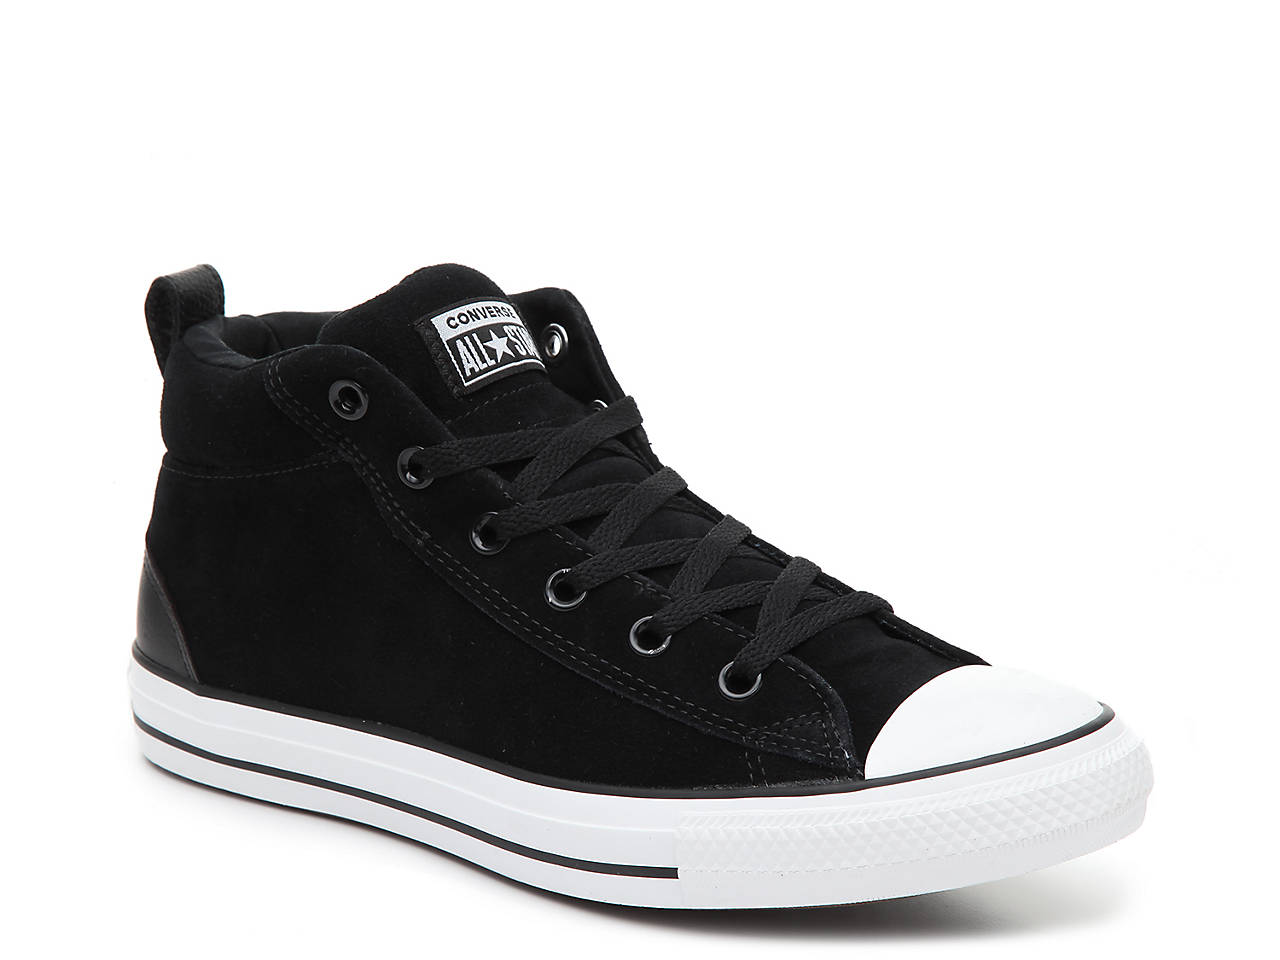 465bef2fb3e Converse Chuck Taylor All Star Street Mid-Top Sneaker - Men s Men s ...